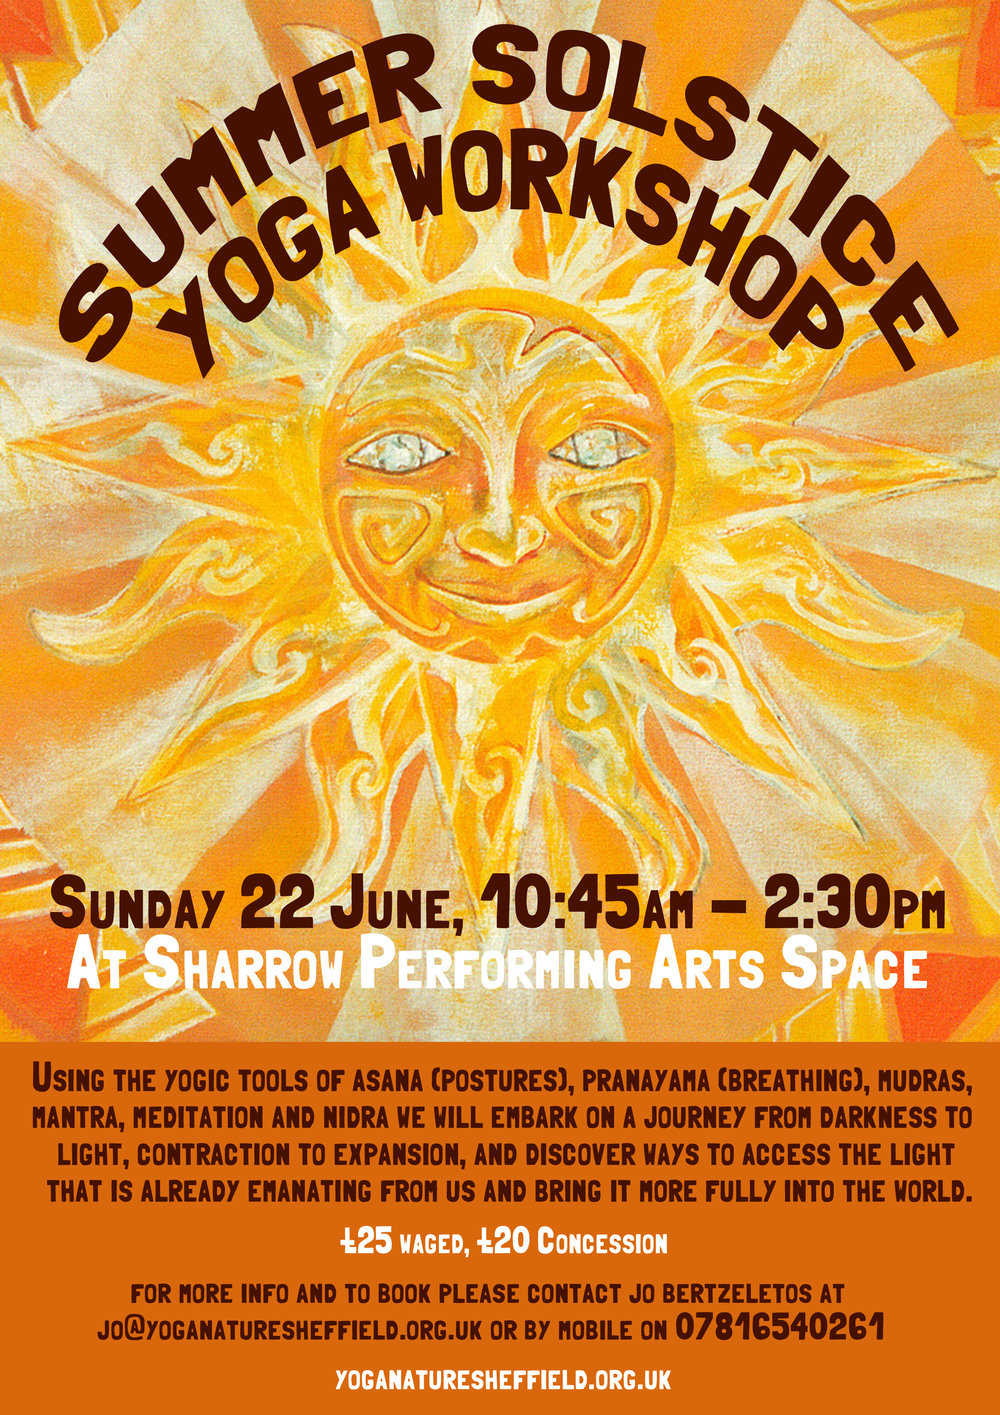 Summer Solstice Workshop